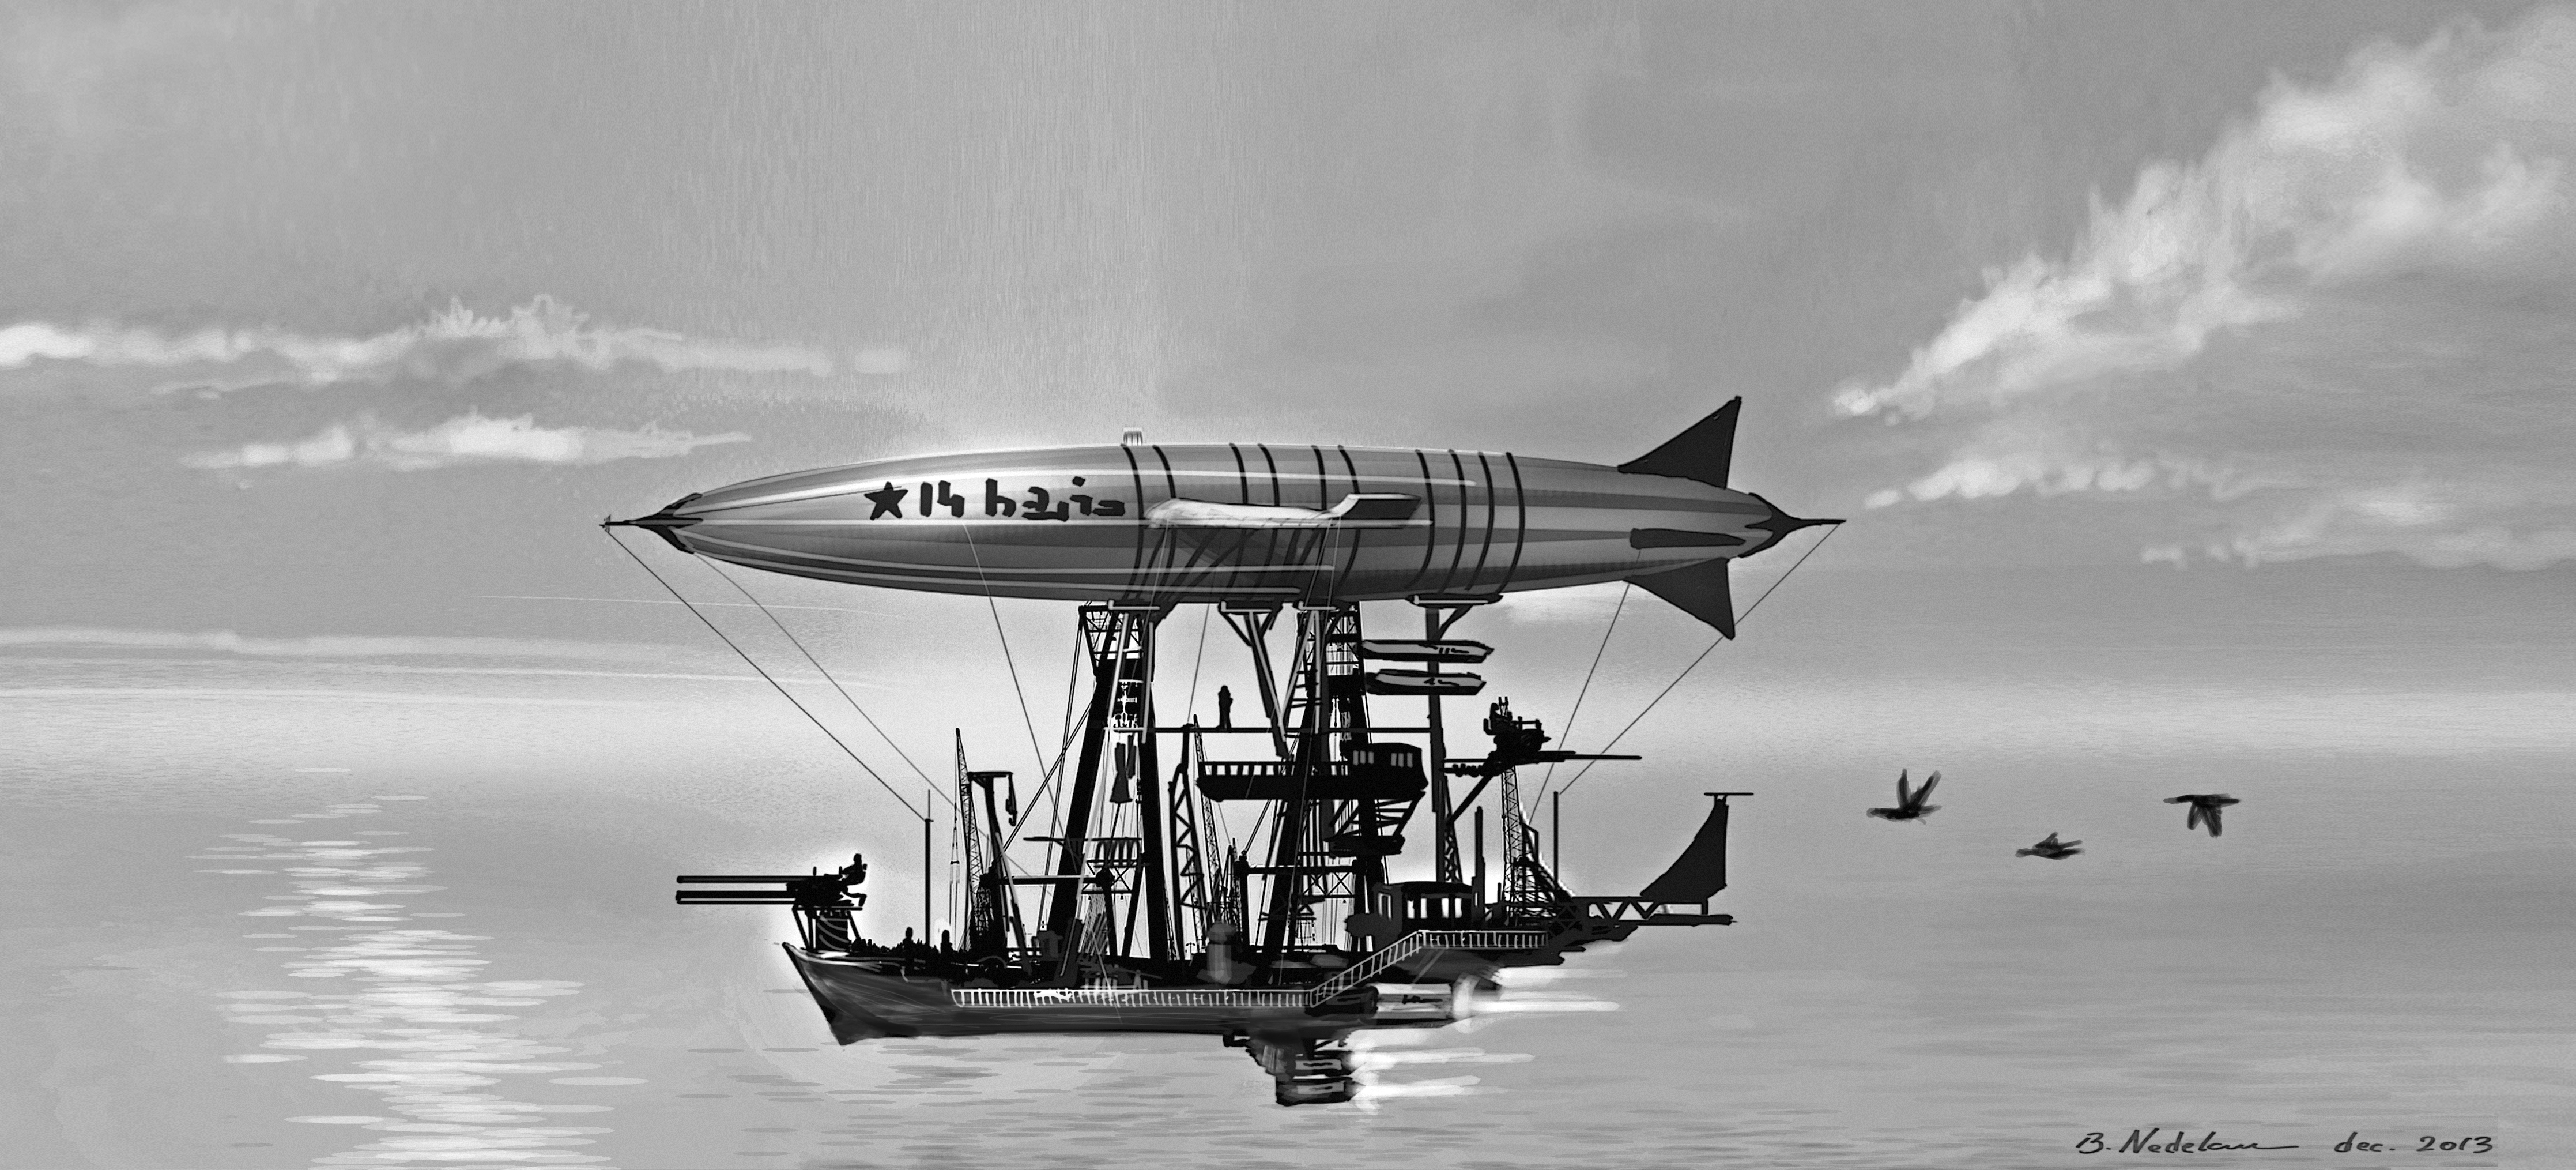 Zeppelin jet warship thing